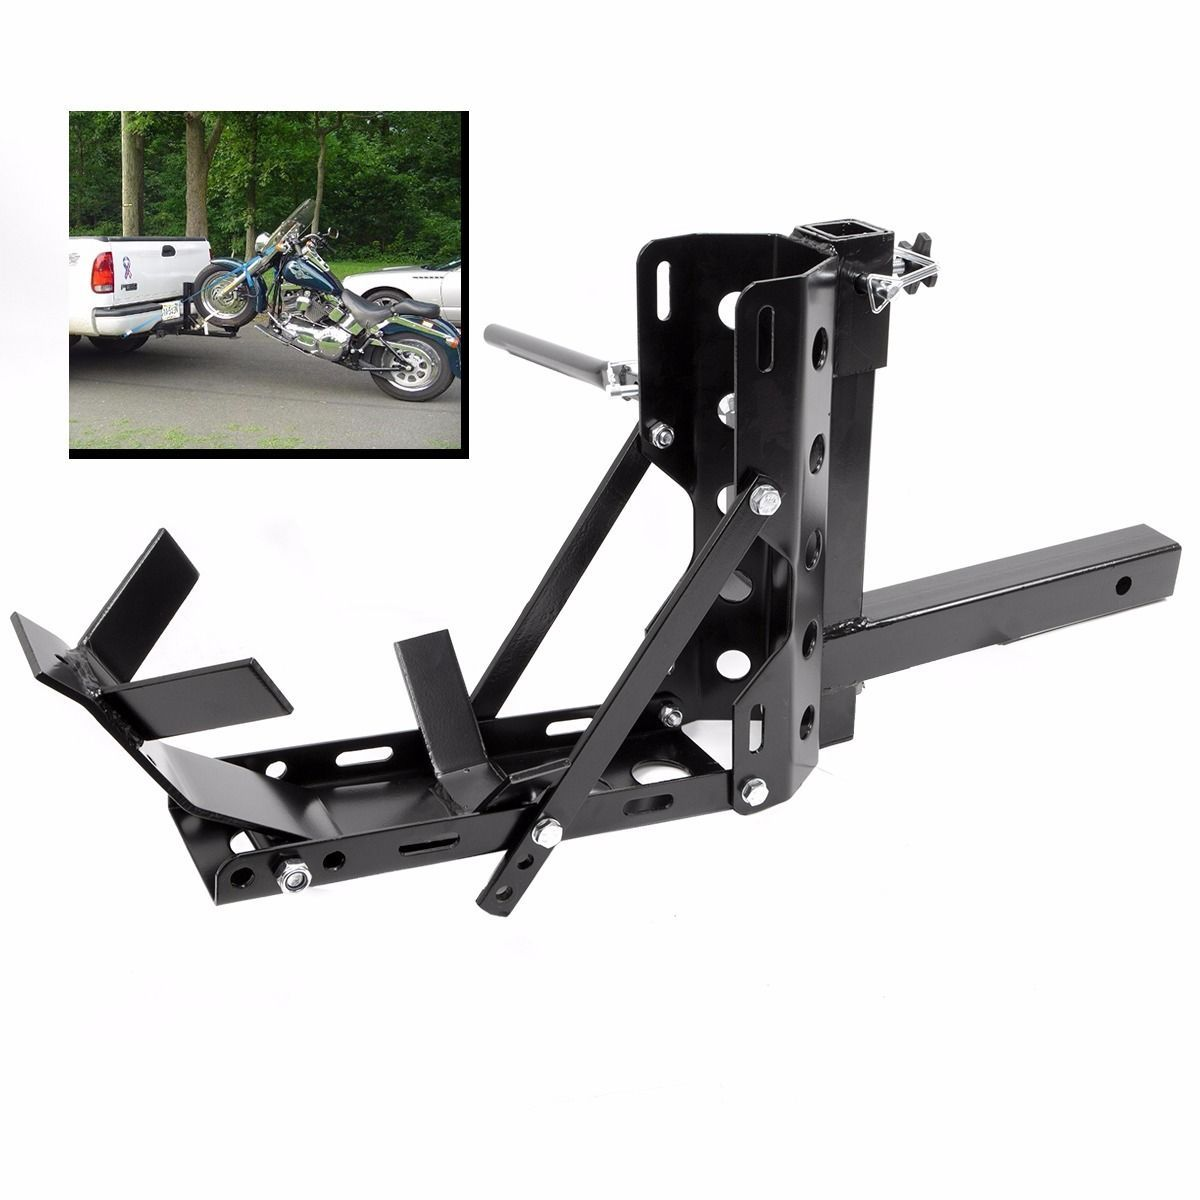 Lightweight & Portable Motorcycle MX Trailer Carrier Tow Dolly ...